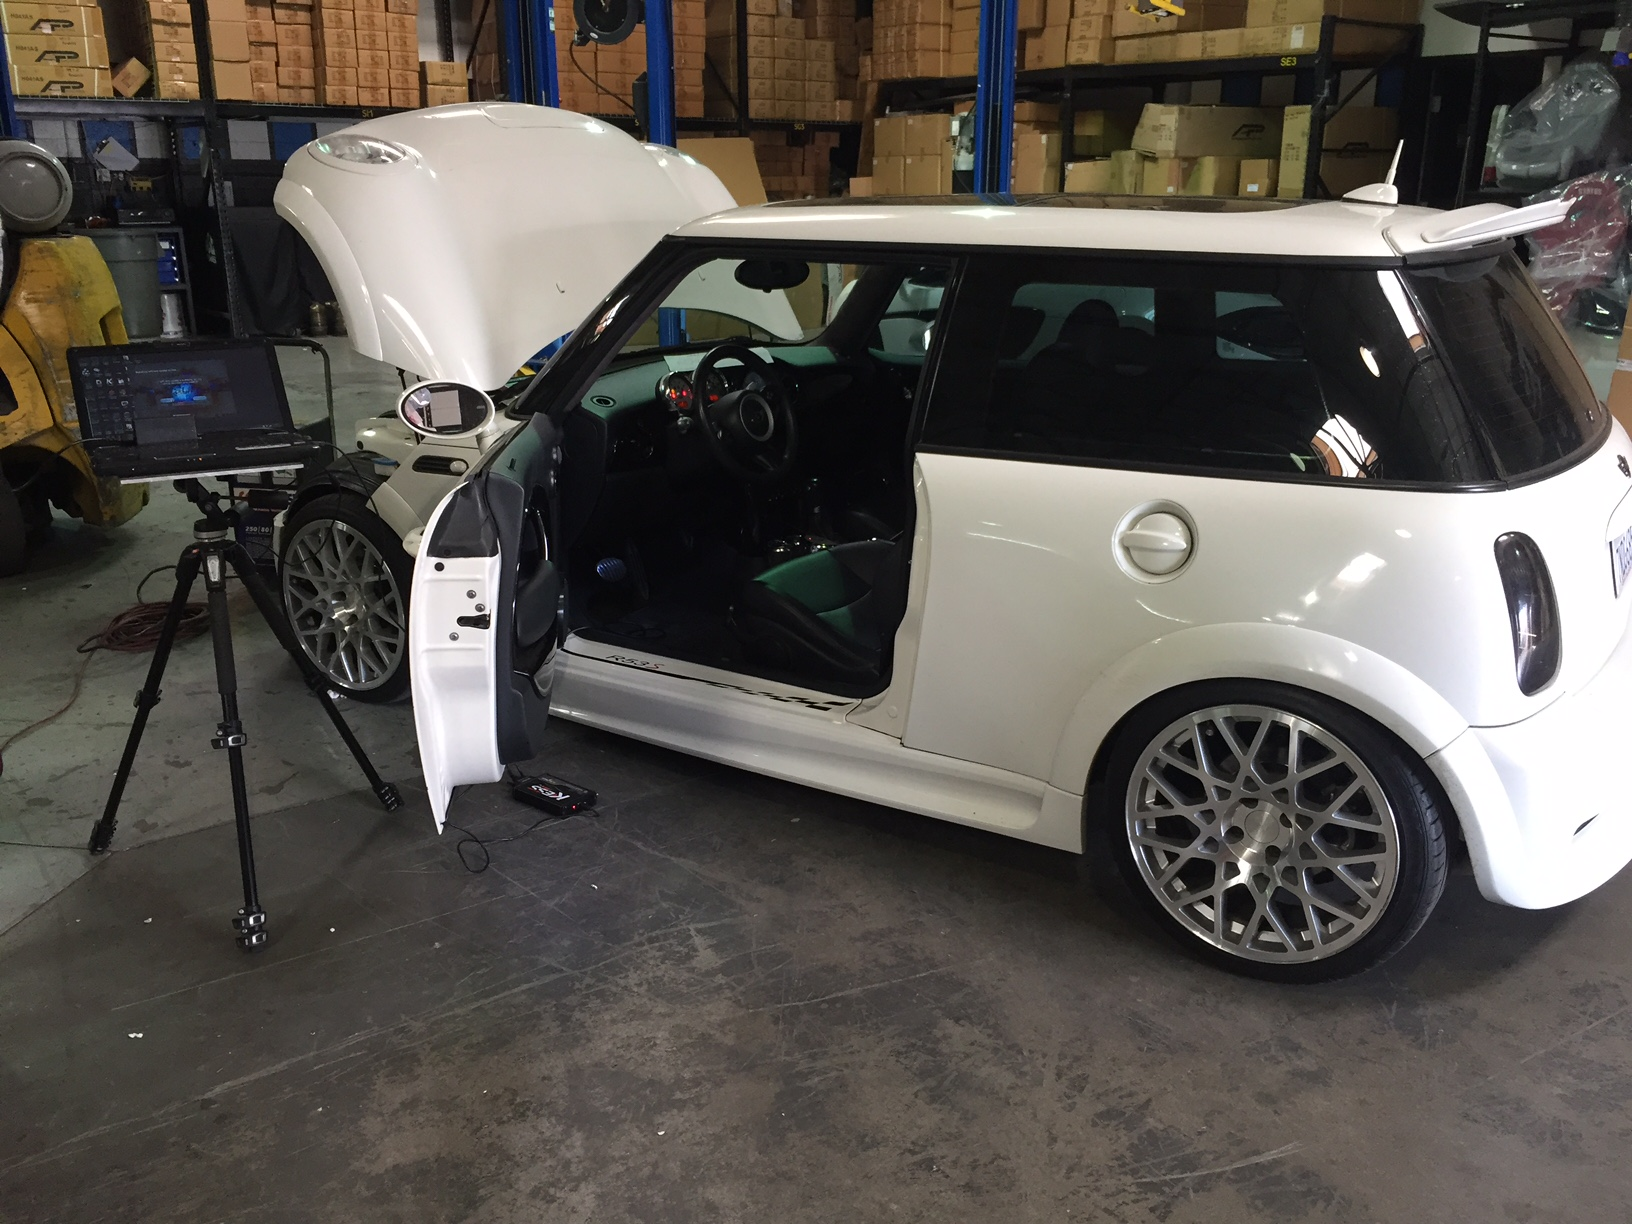 richard-mini-cooper-r53-flash-1